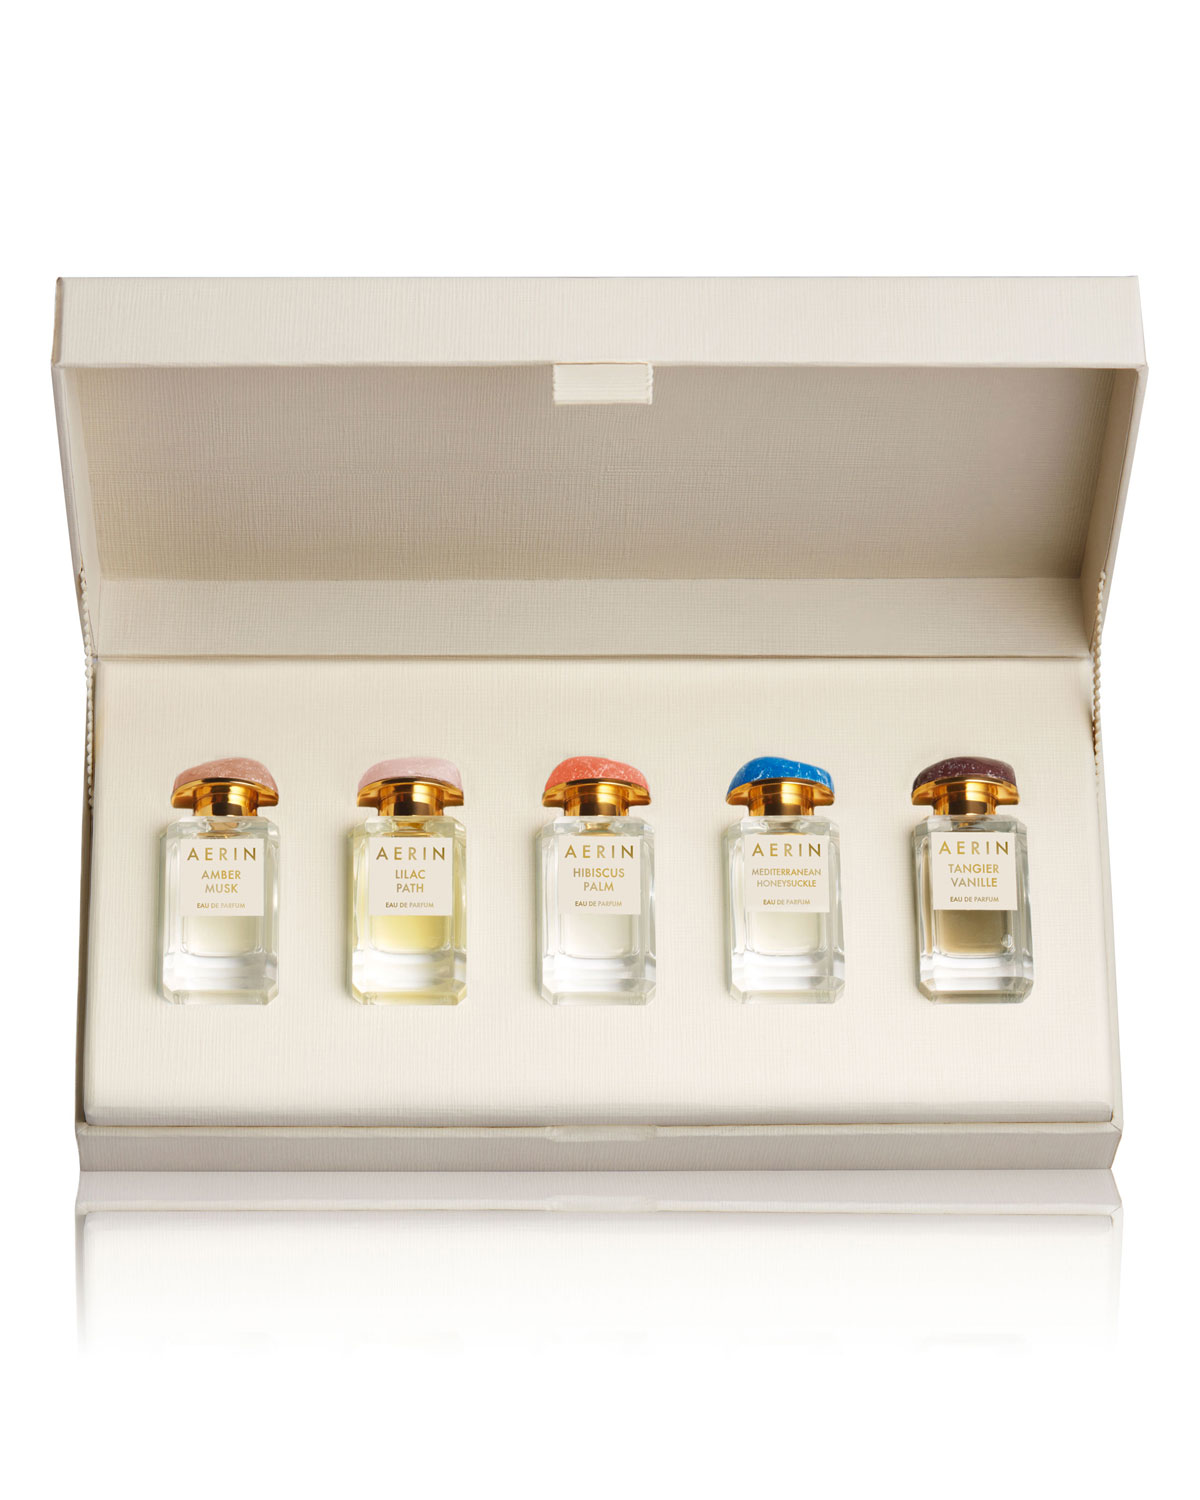 The Fragrance Collection